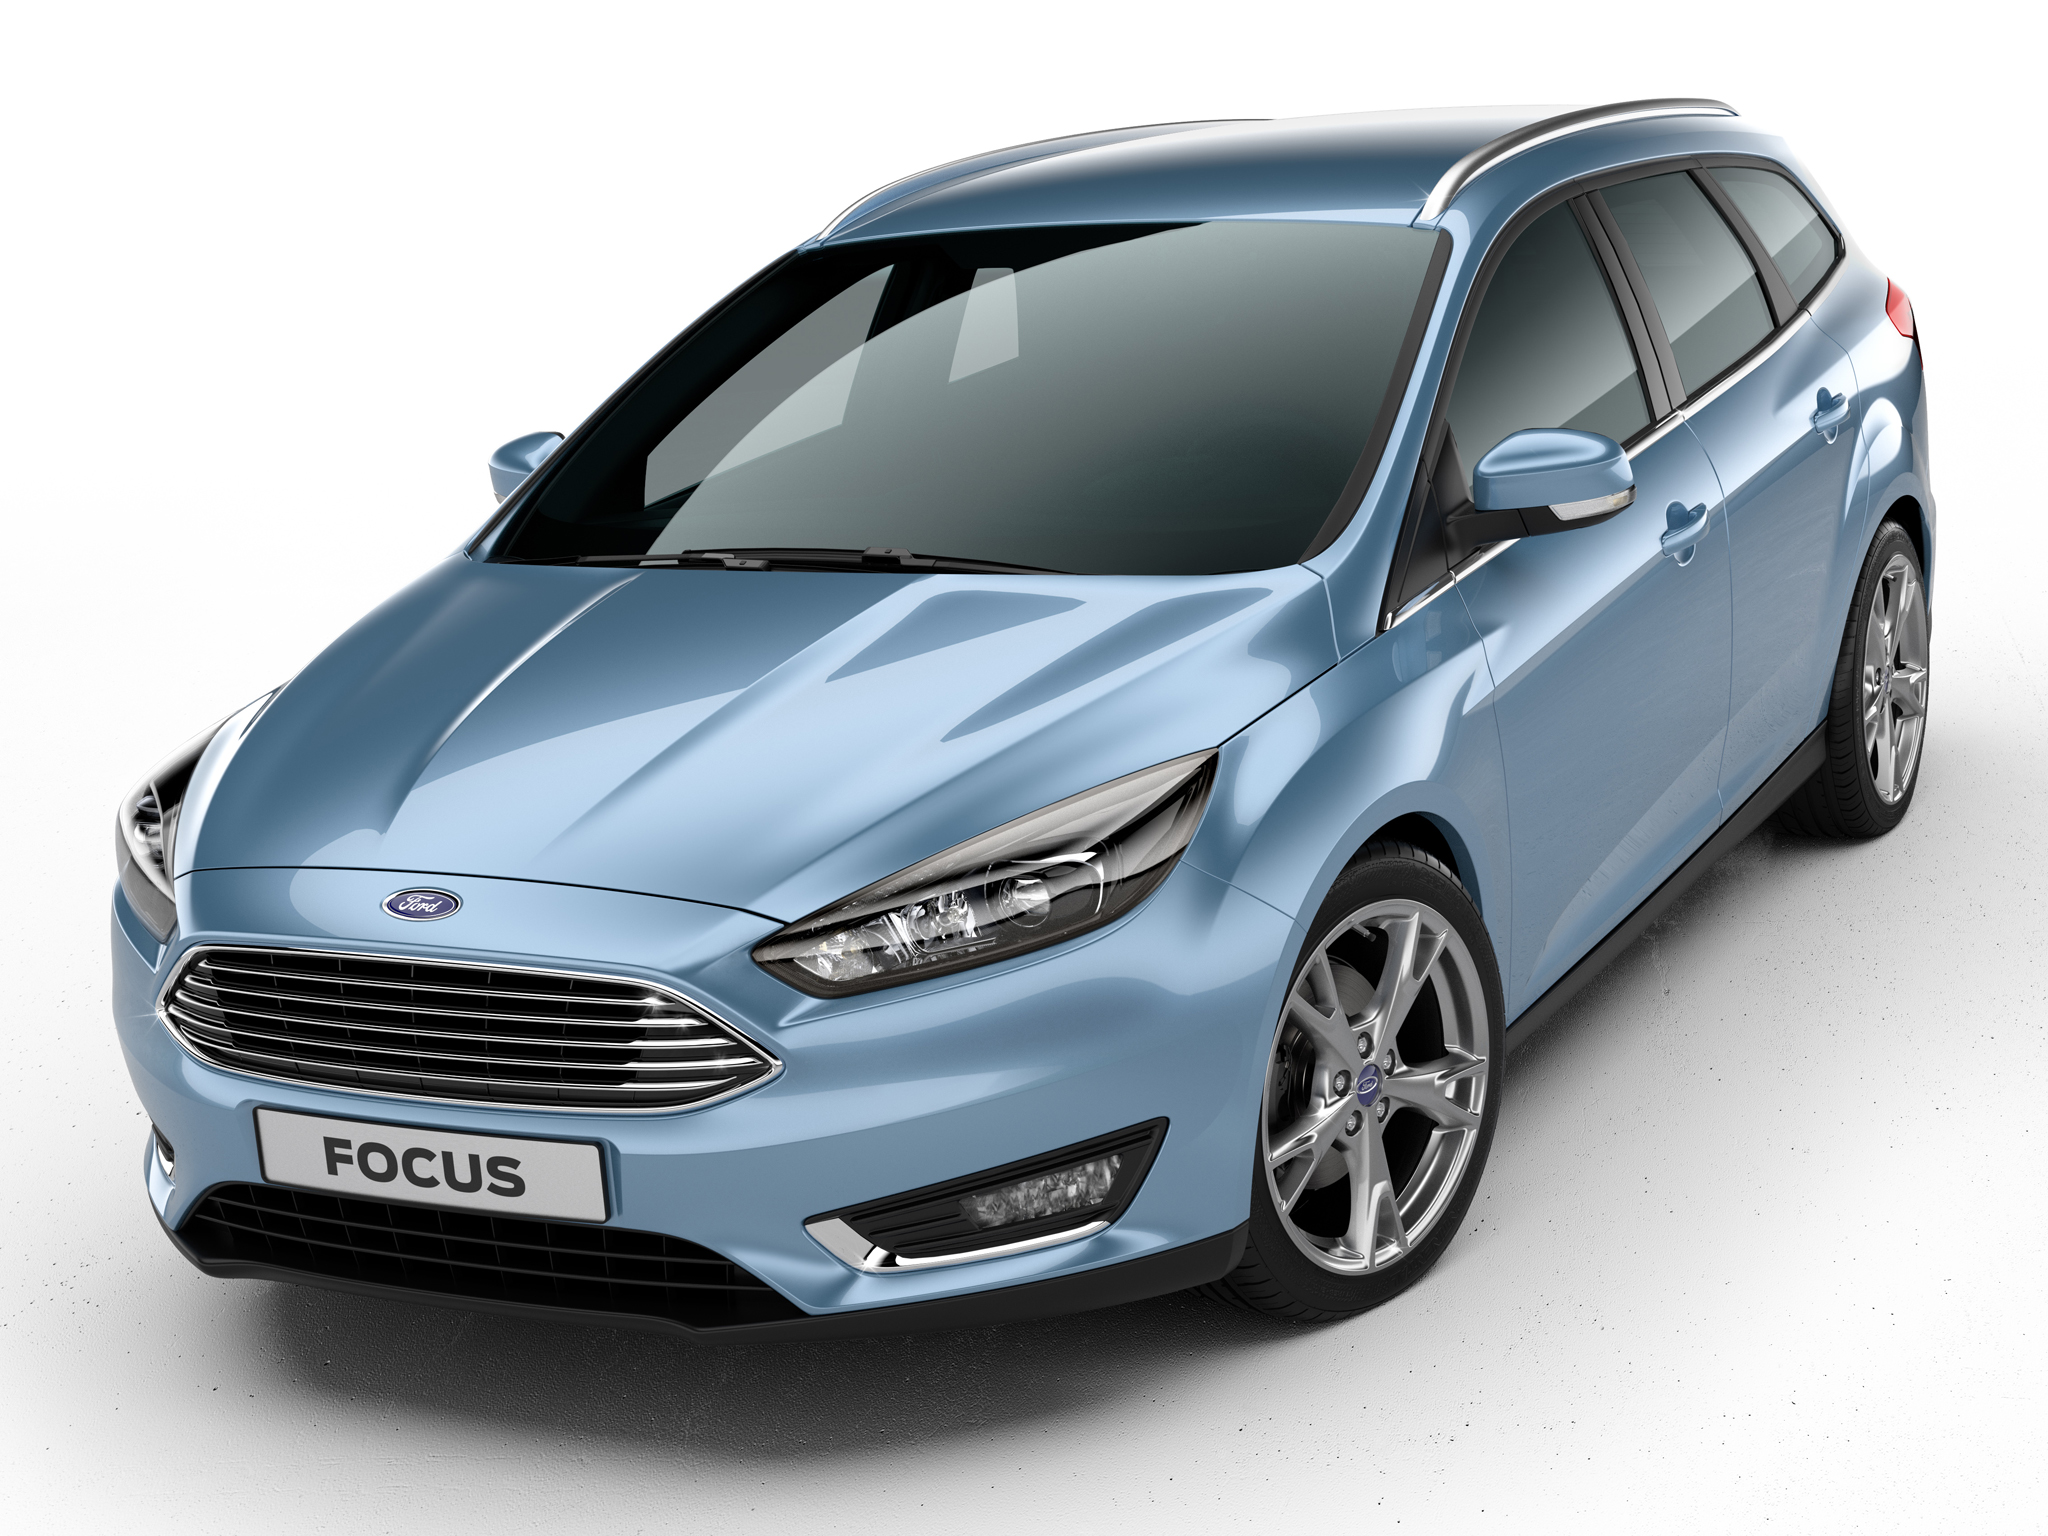 2014 ford focus estate touring leaked photos show new interior and redesigned grille. Black Bedroom Furniture Sets. Home Design Ideas